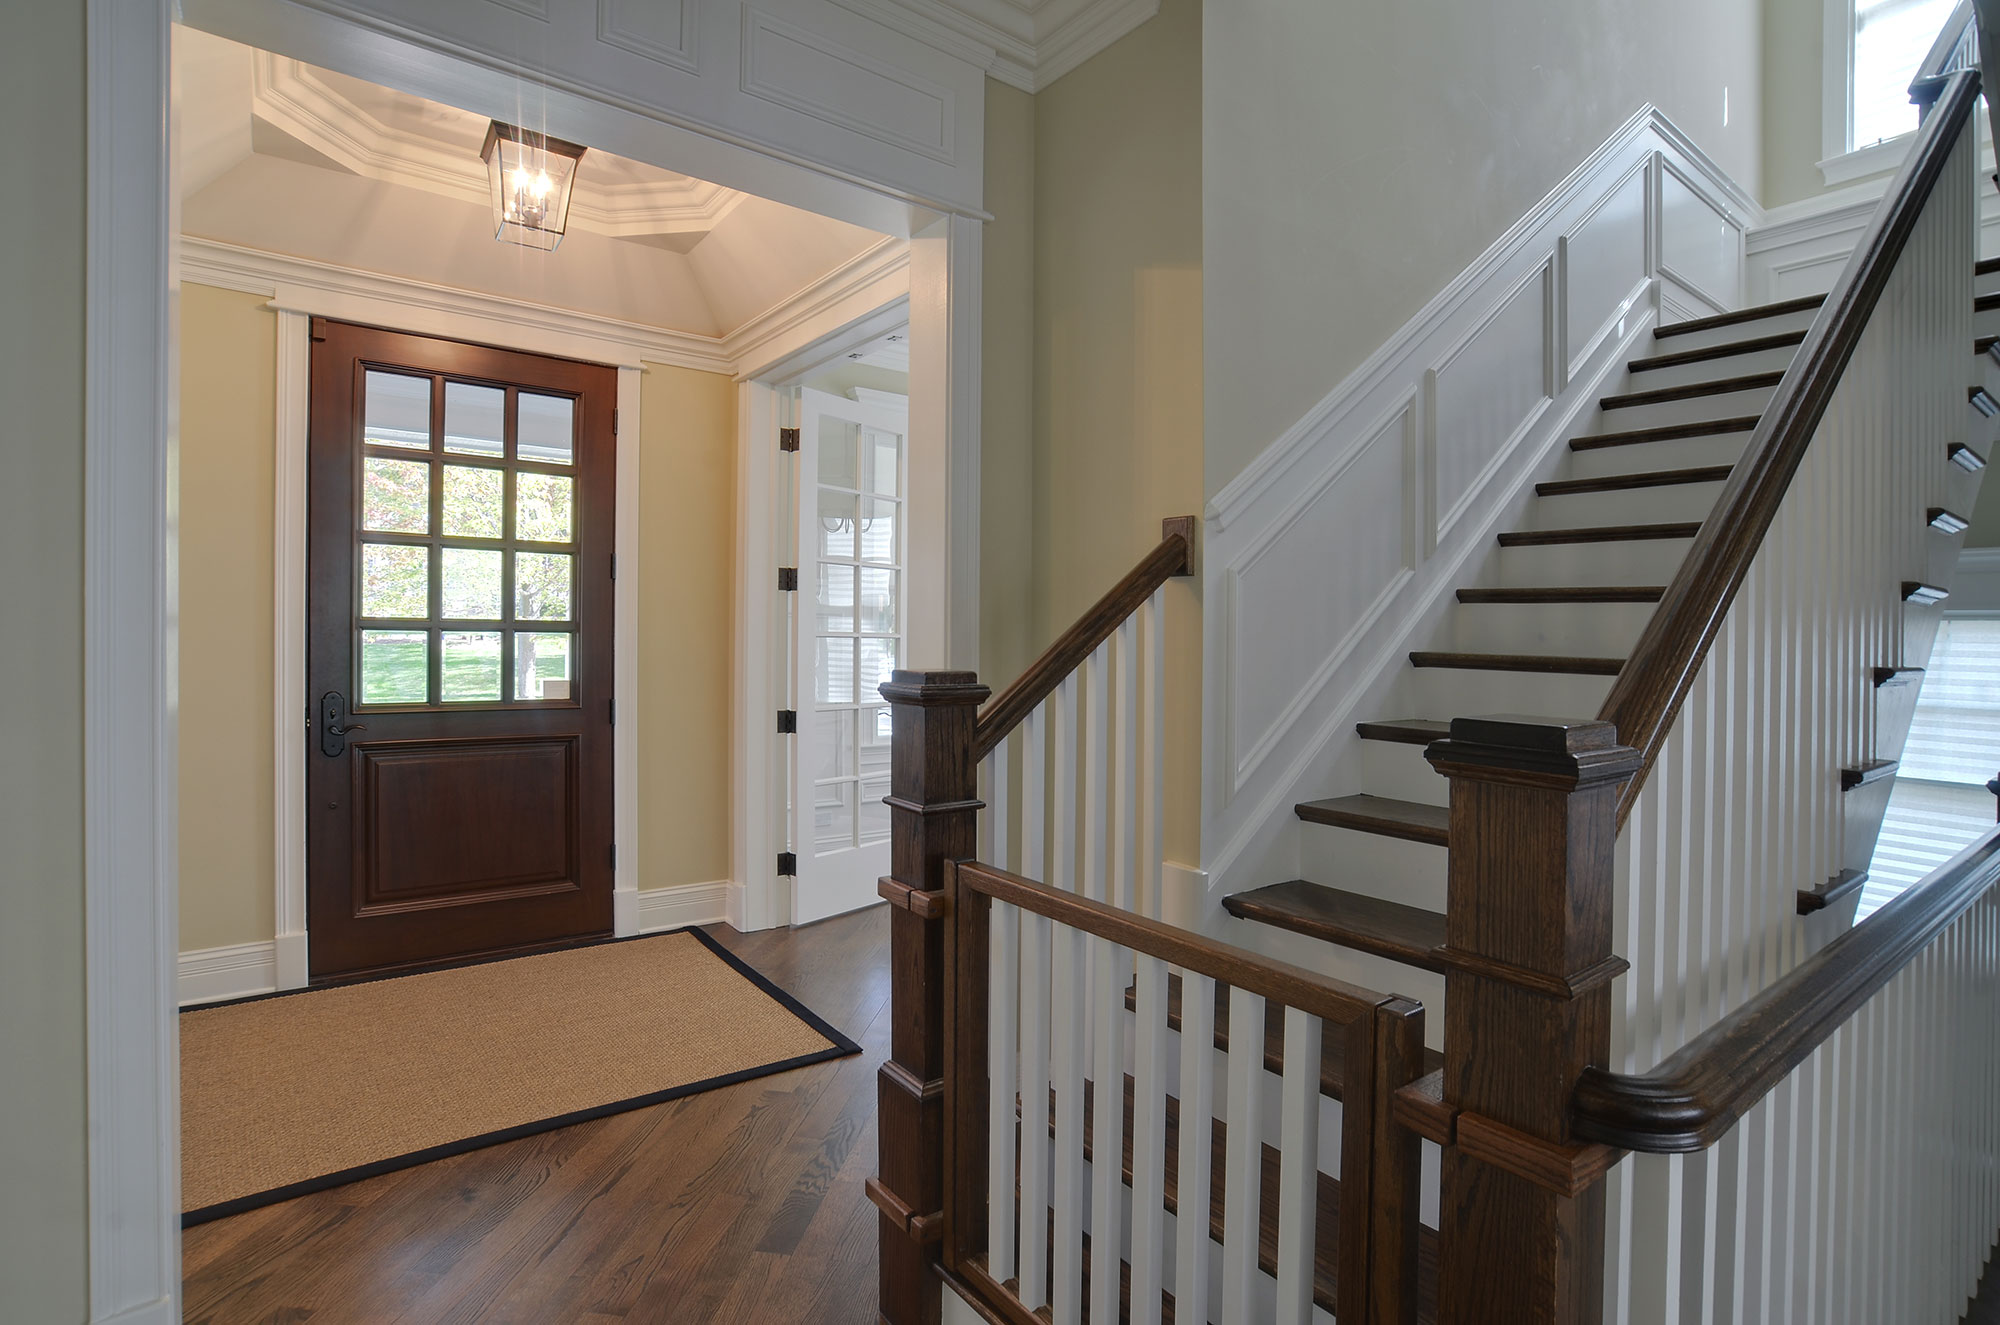 Doors wood doors 0152 01 preview jpg - 30 S Bruner Custom Home Photo Gallery Image Number 10 Of Staircase Door